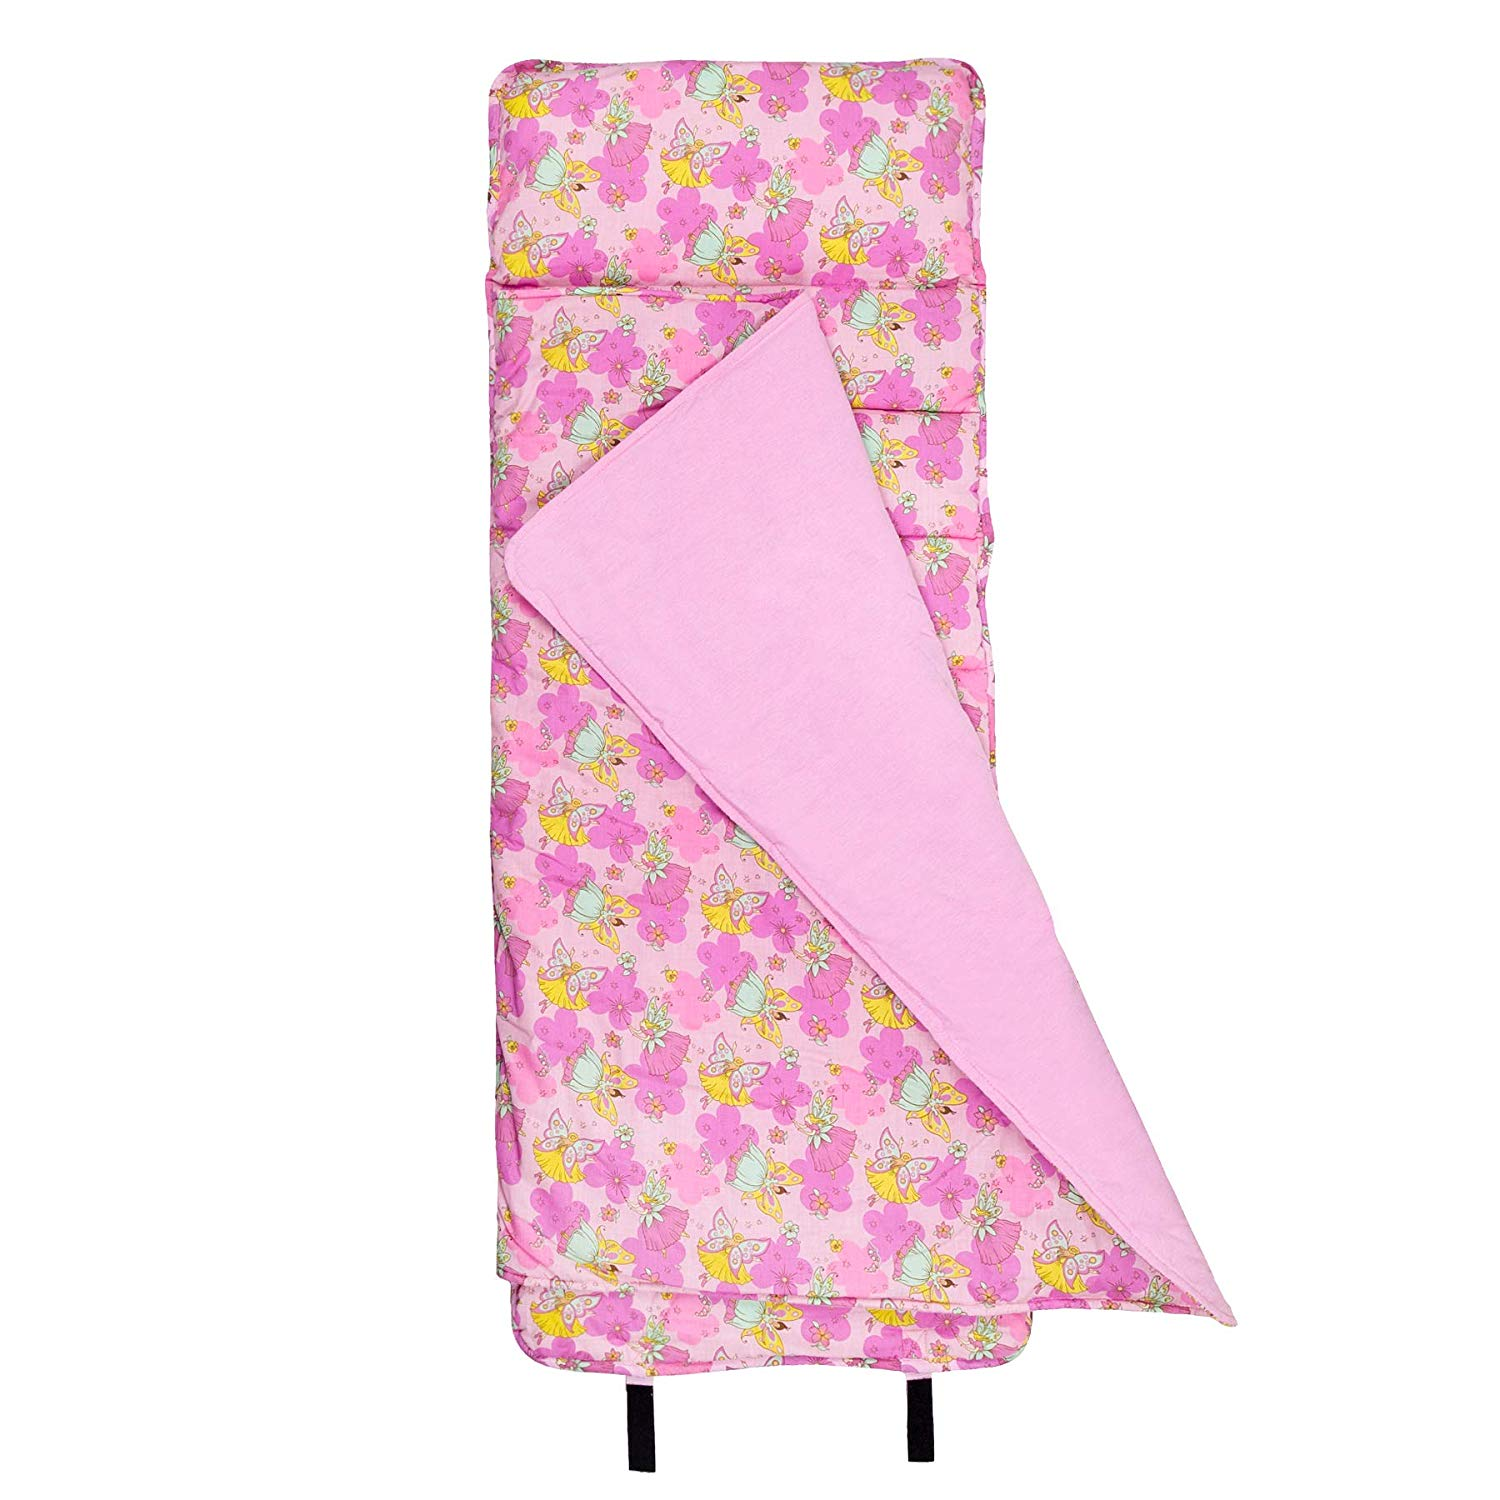 An image related to Wildkin 28023 Kids Cotton Flannel Sleeping Bag